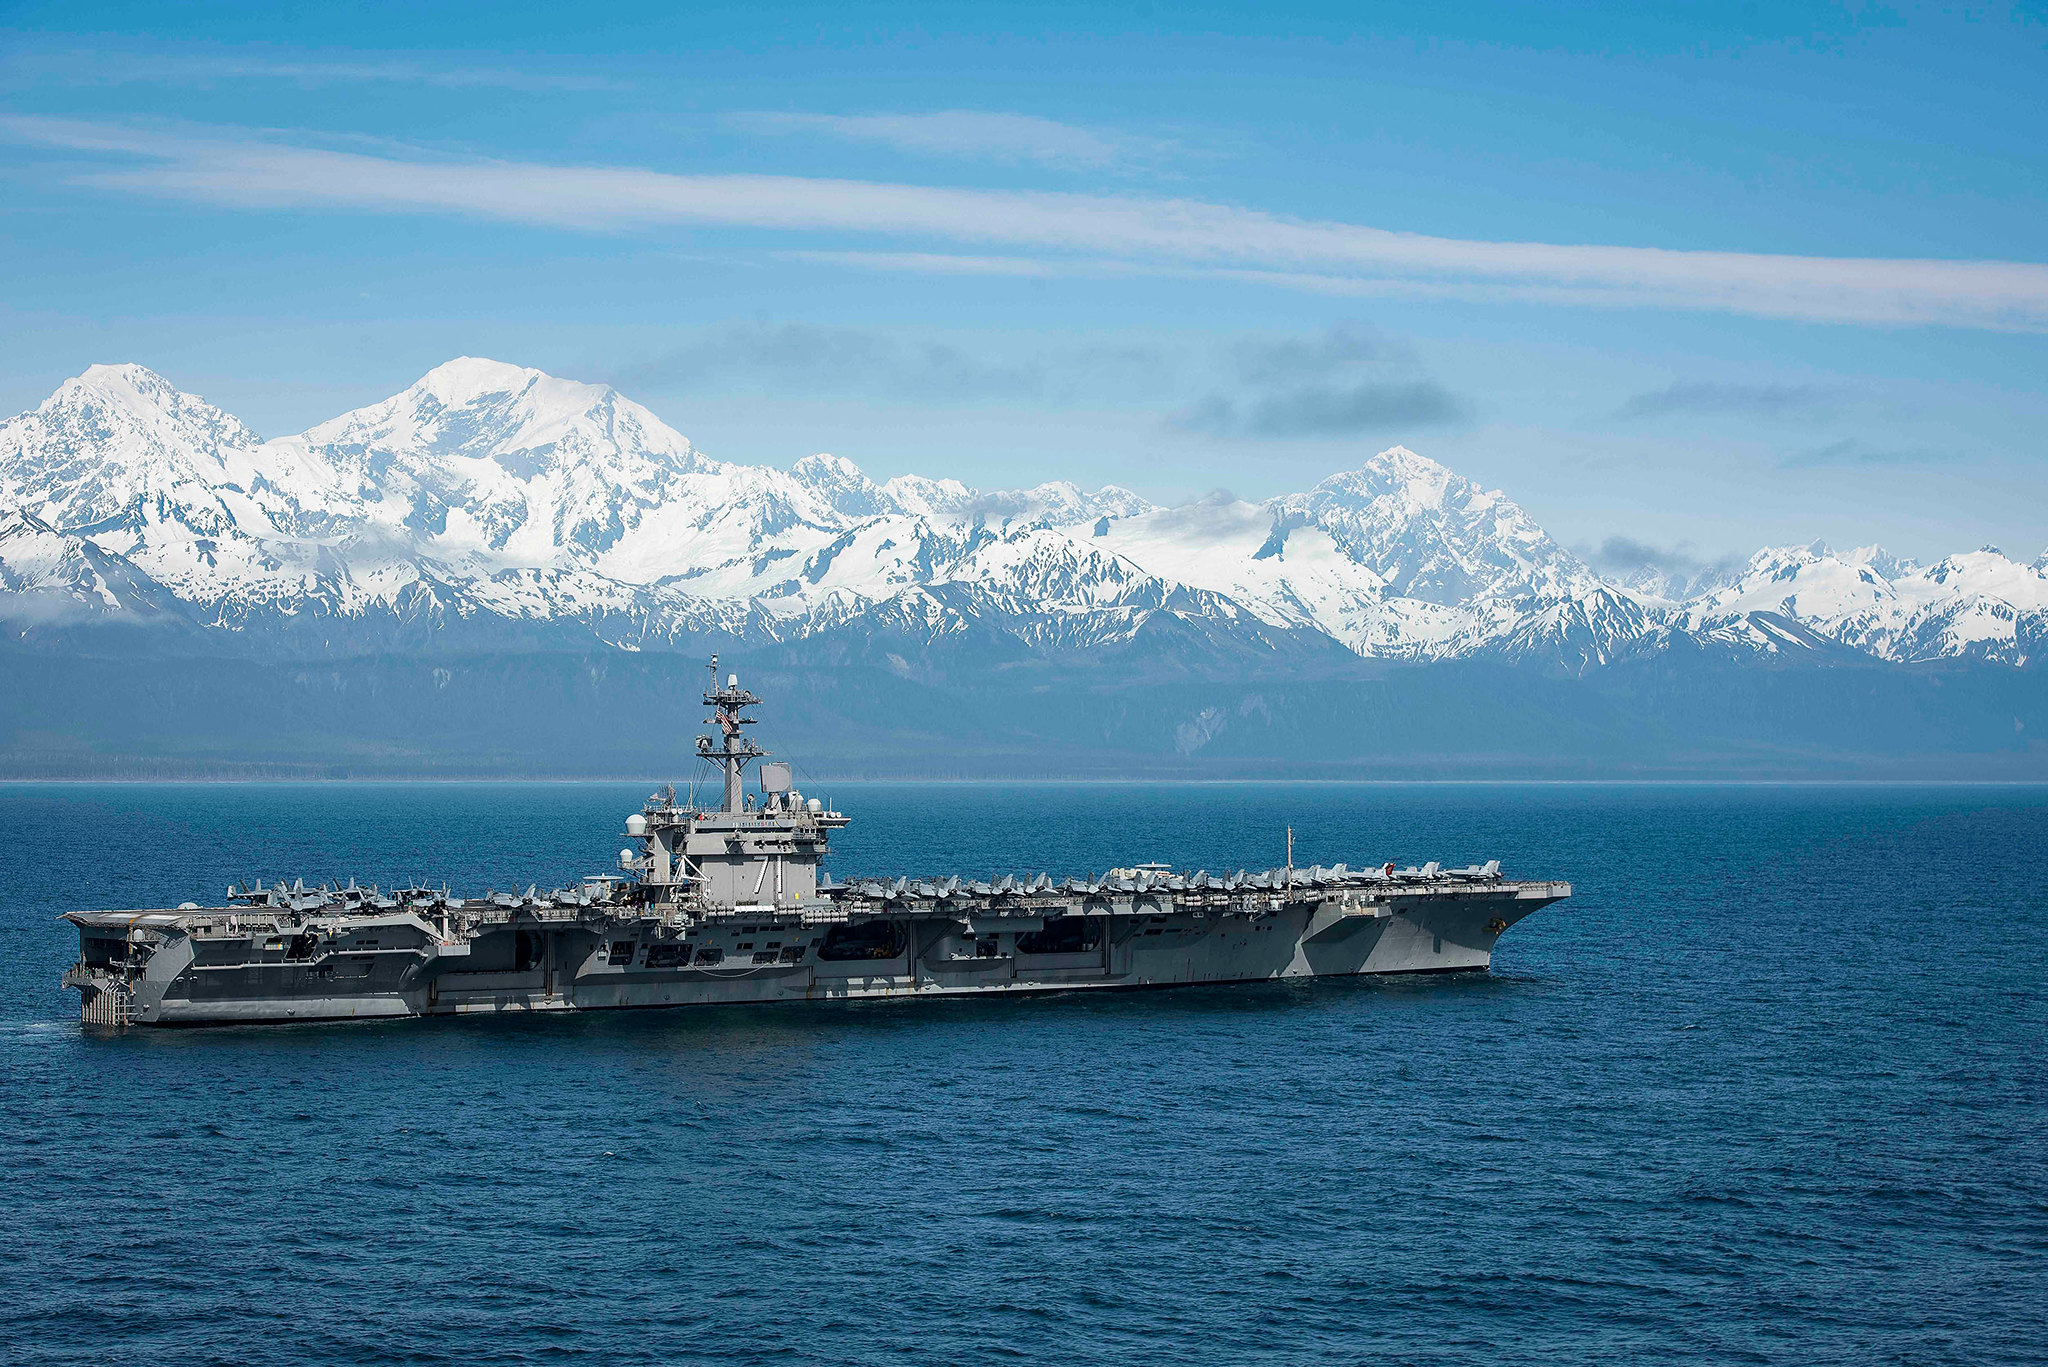 The Nimitz-class aircraft carrier USS Theodore Roosevelt (CVN 71) transits the Gulf of Alaska on May 25, 2019, after participating in Exercise Northern Edge 2019. (Mass Communication Specialist 2nd Class Anthony J. Rivera/Navy)